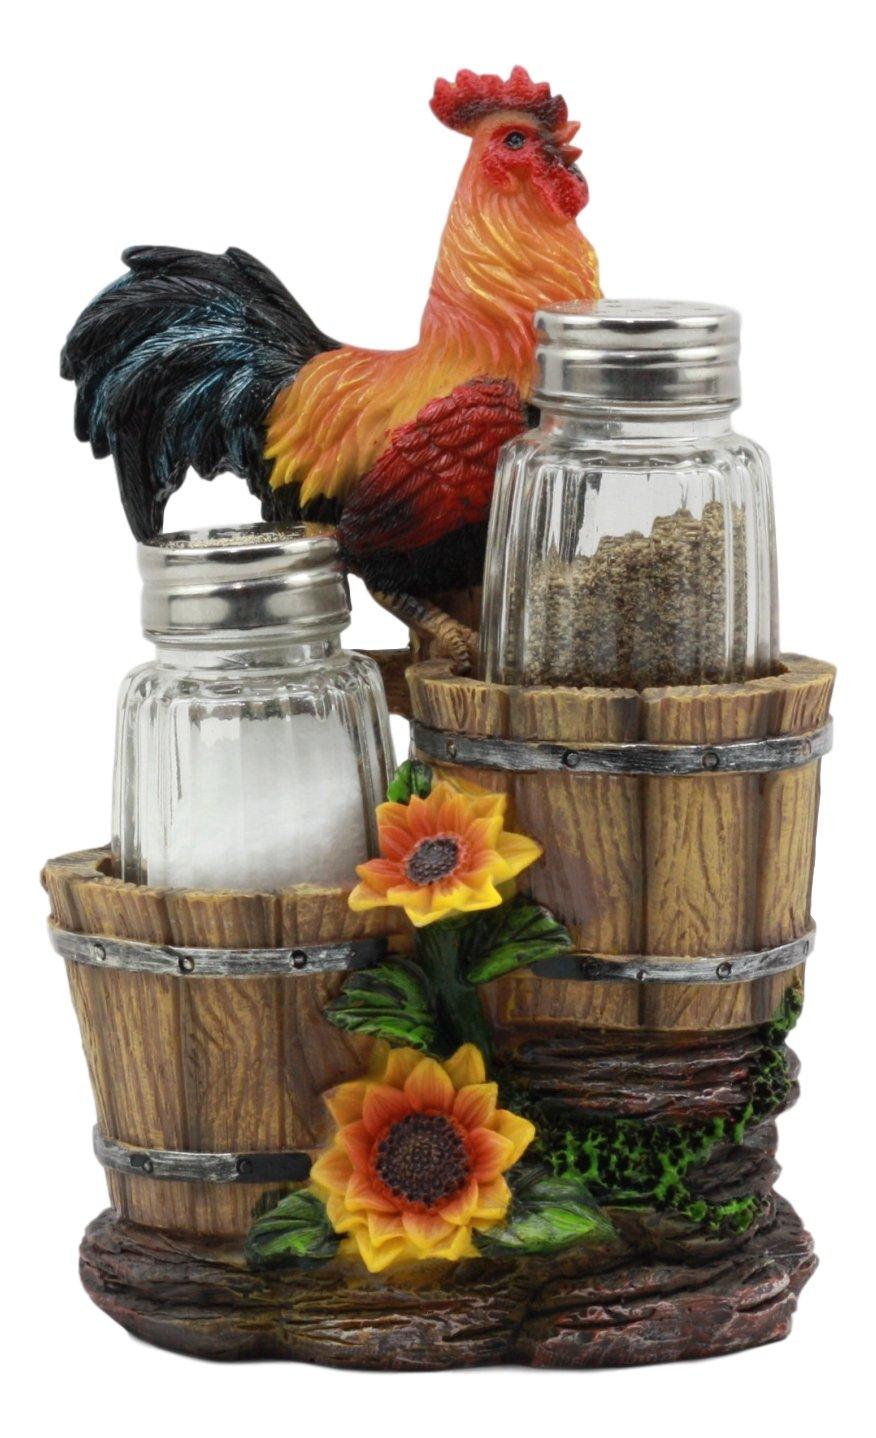 Sunflower Farm Crowing Rooster Standing On Fence By Old Fashioned Wooden Buckets Glass Salt And Pepper Shakers Holder Figurine